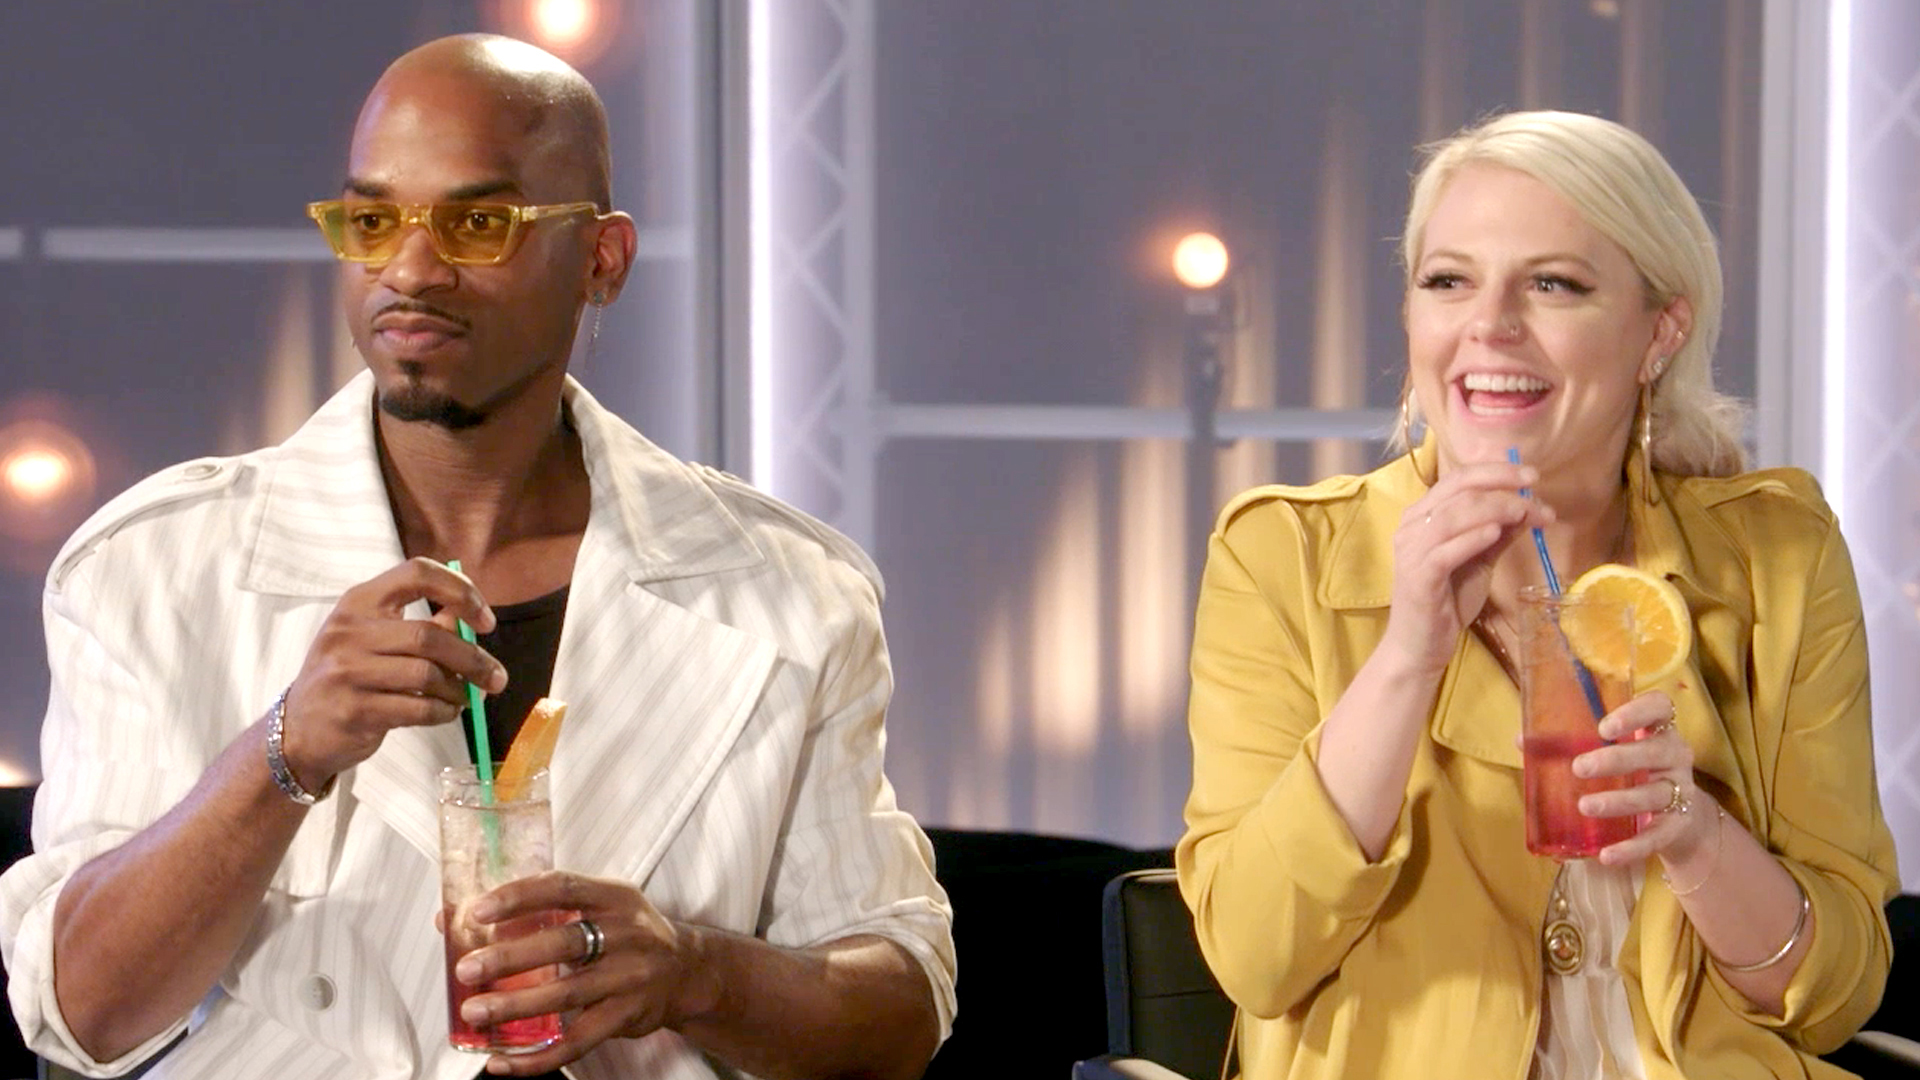 The Project Runway Designers Dish on All the House Drama You Don't See